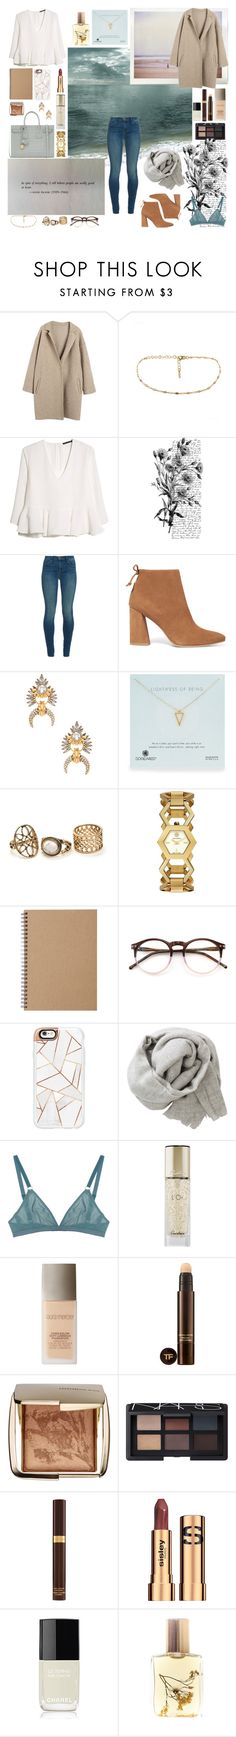 """Make Art Baby"" by angie-5soslm ❤ liked on Polyvore featuring MANGO, Pennyblack, Sebastian Professional, J Brand, Stuart Weitzman, Elizabeth Cole, Dogeared, Tory Burch, Muji and Wildfox"